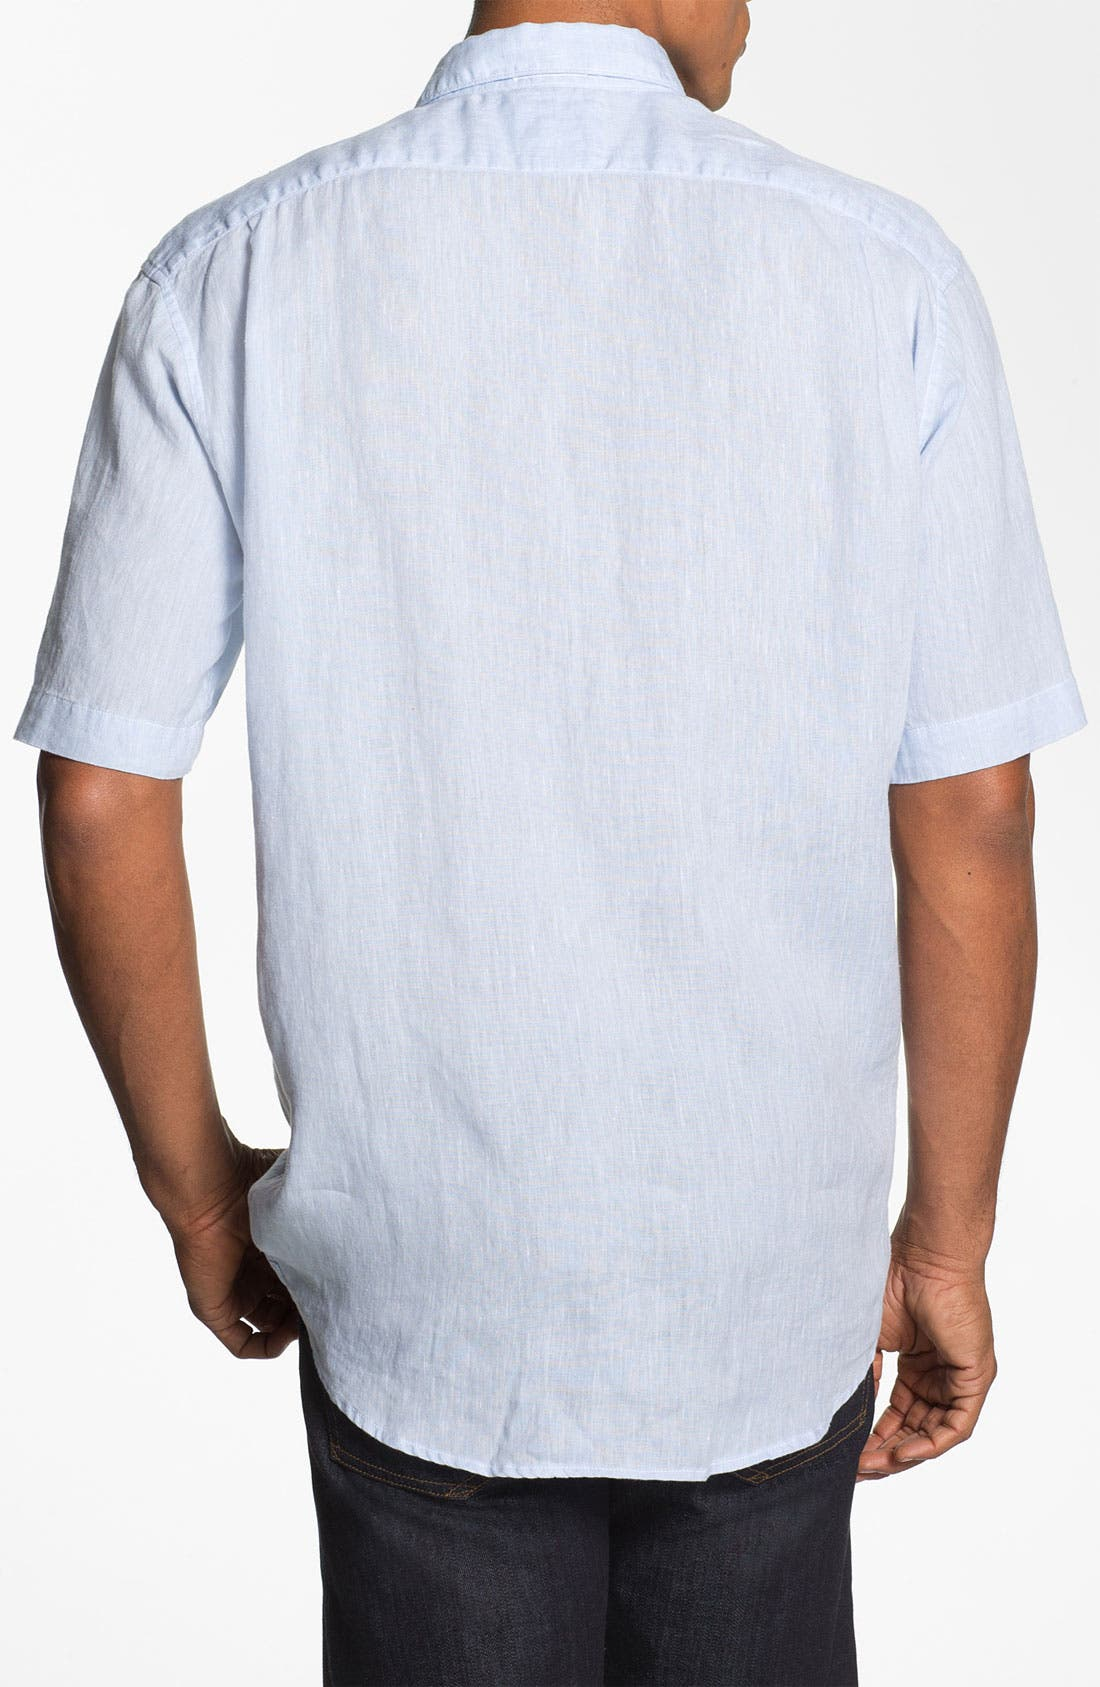 Alternate Image 2  - Lacoste Short Sleeve Linen Shirt